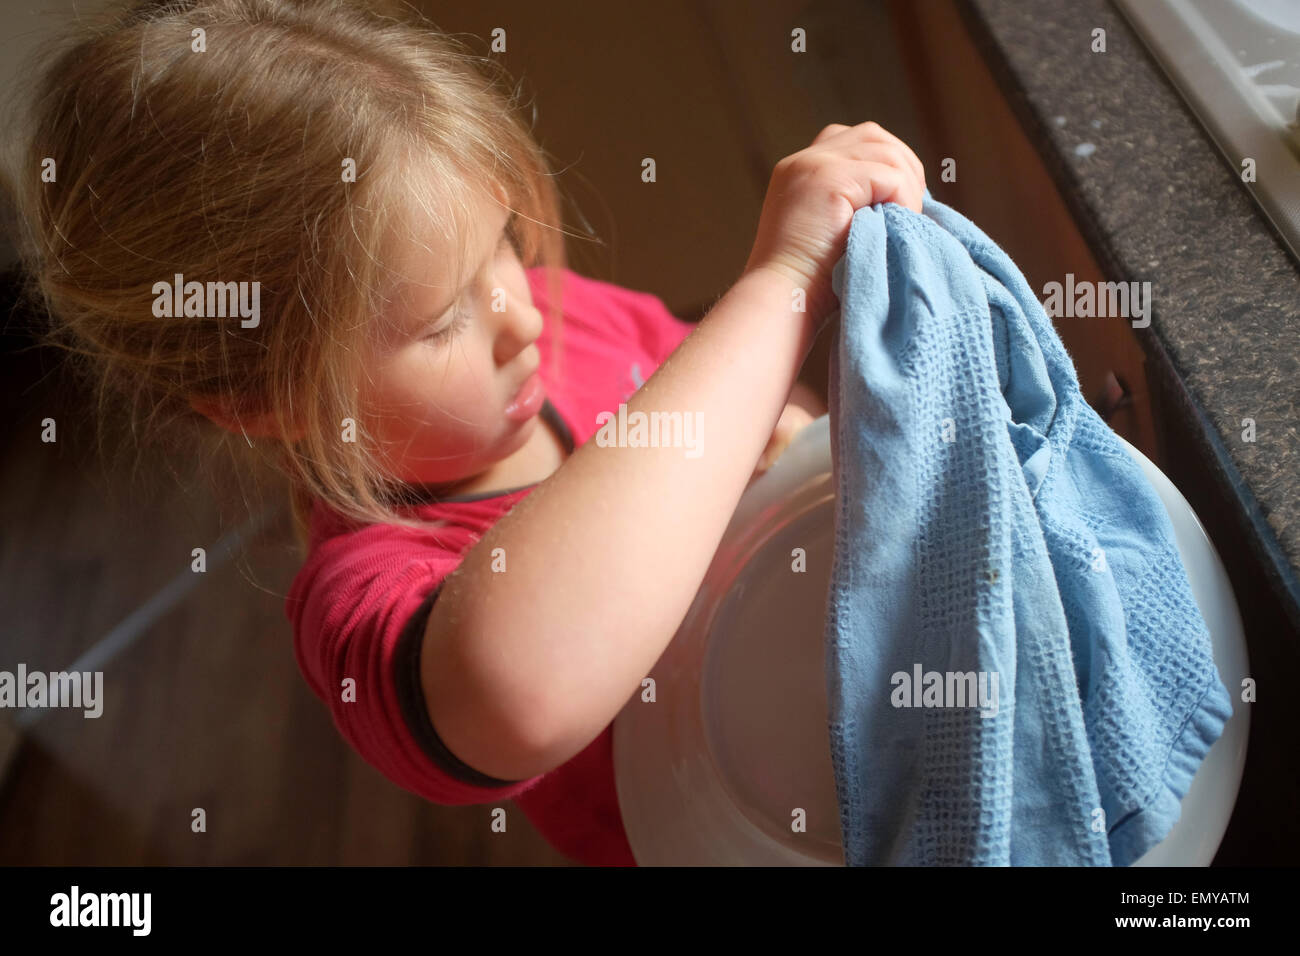 A young girl washing up and drying dishes - Stock Image